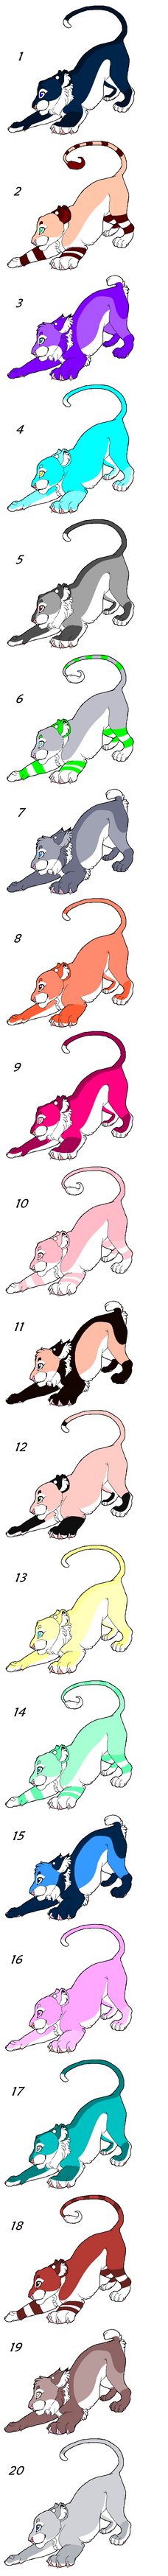 Feline Mix Point Adopts 5 OPEN by Akssel-Adopts